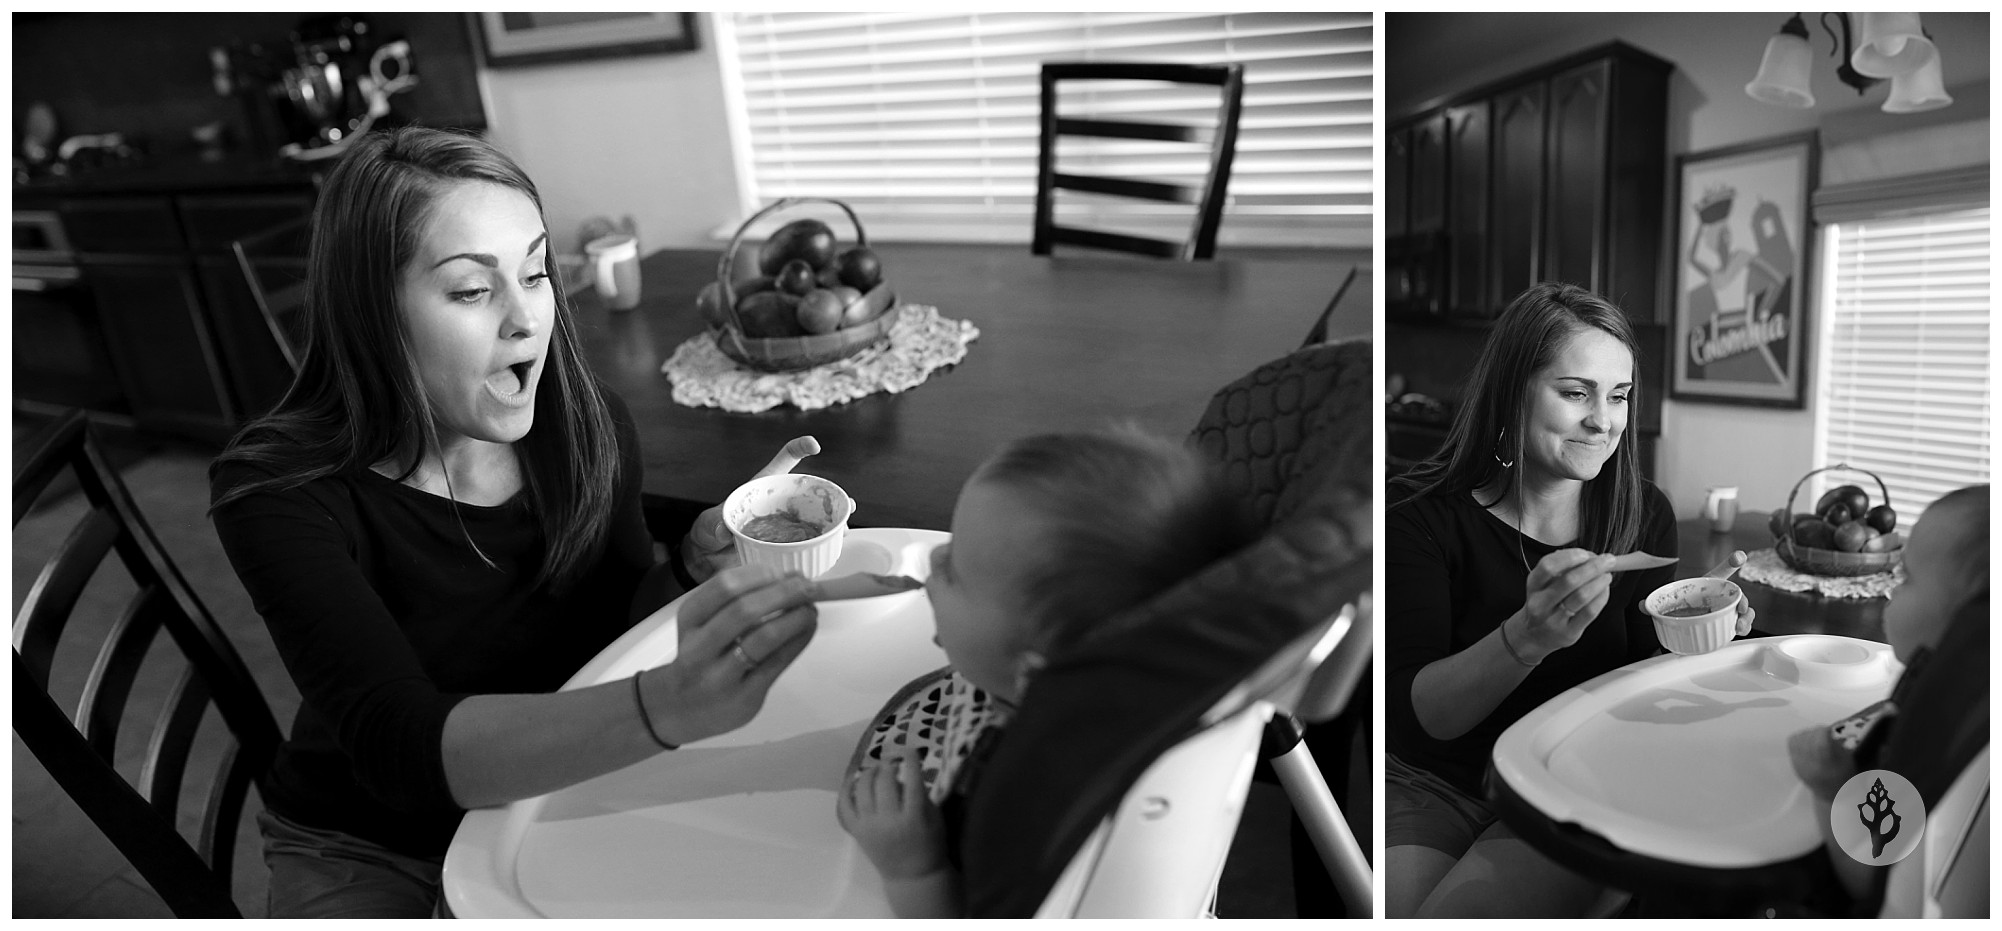 Copy of DFW Birth Photography Family Photographer Photojournalism Documentary Photography Fort Worth Keller Southlake Texas Moms Children Family Photographs Photos